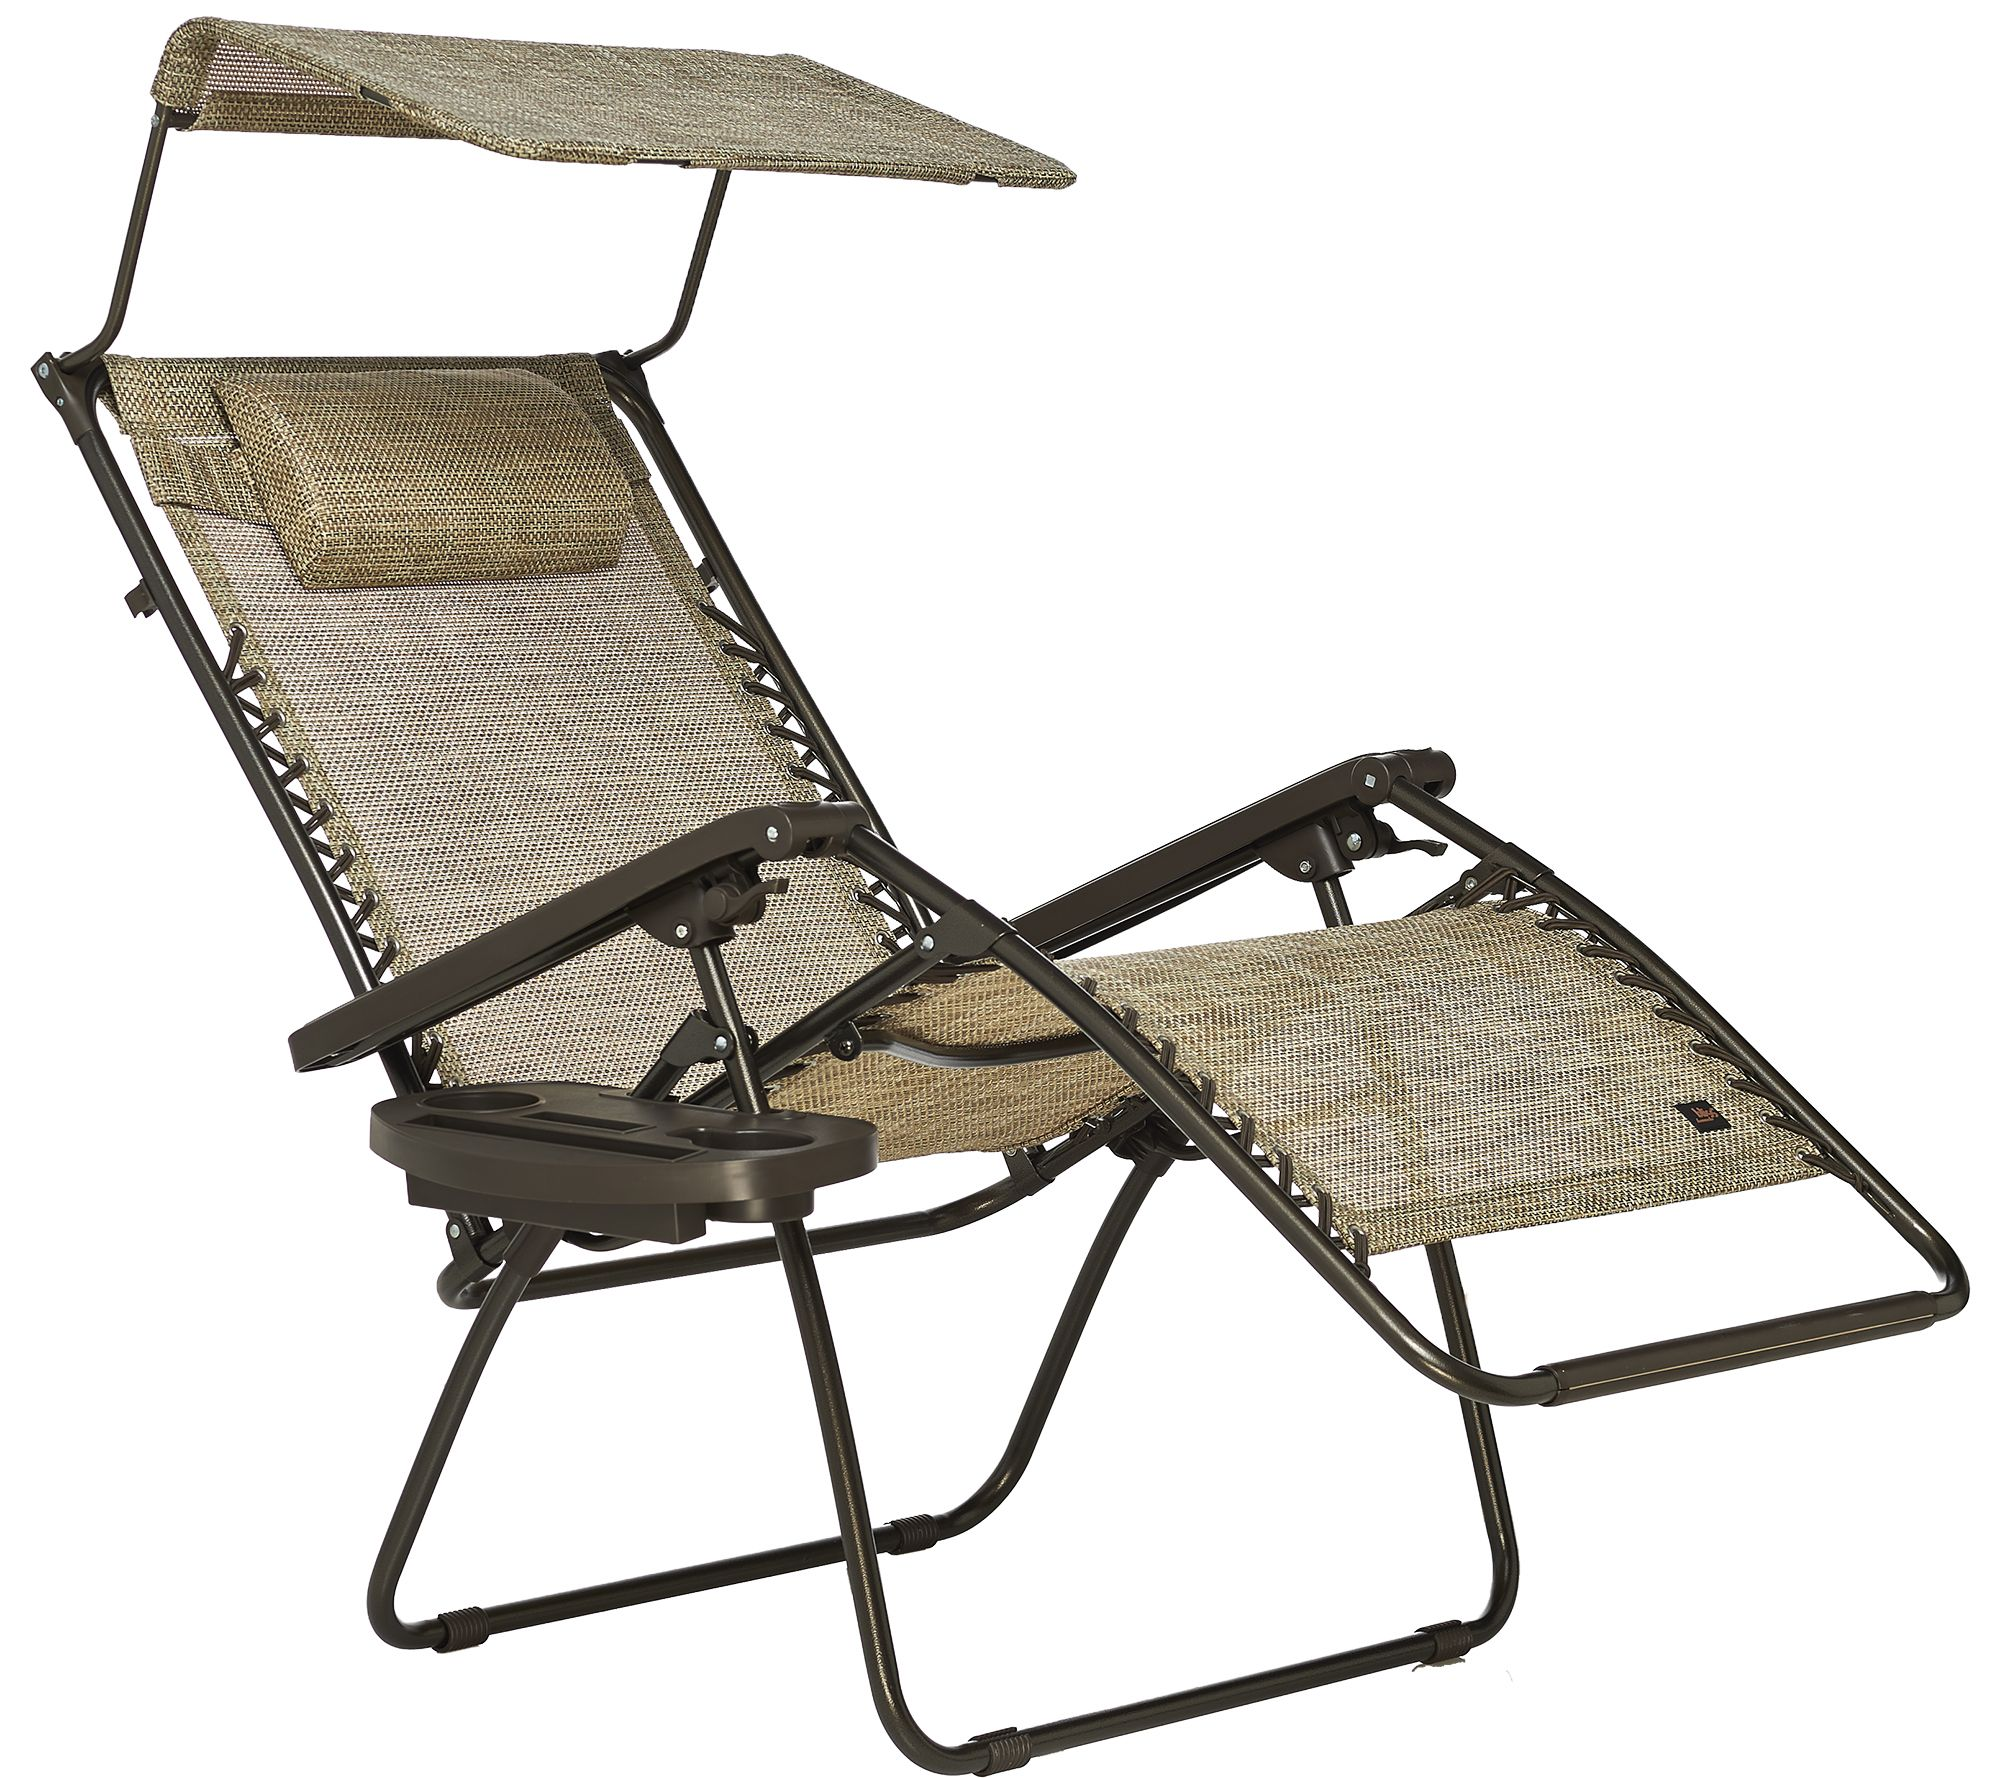 Bliss Hammocks Deluxe XXL Gravity Free Recliner w/Canopy & Tray - Page 1 —  QVC.com